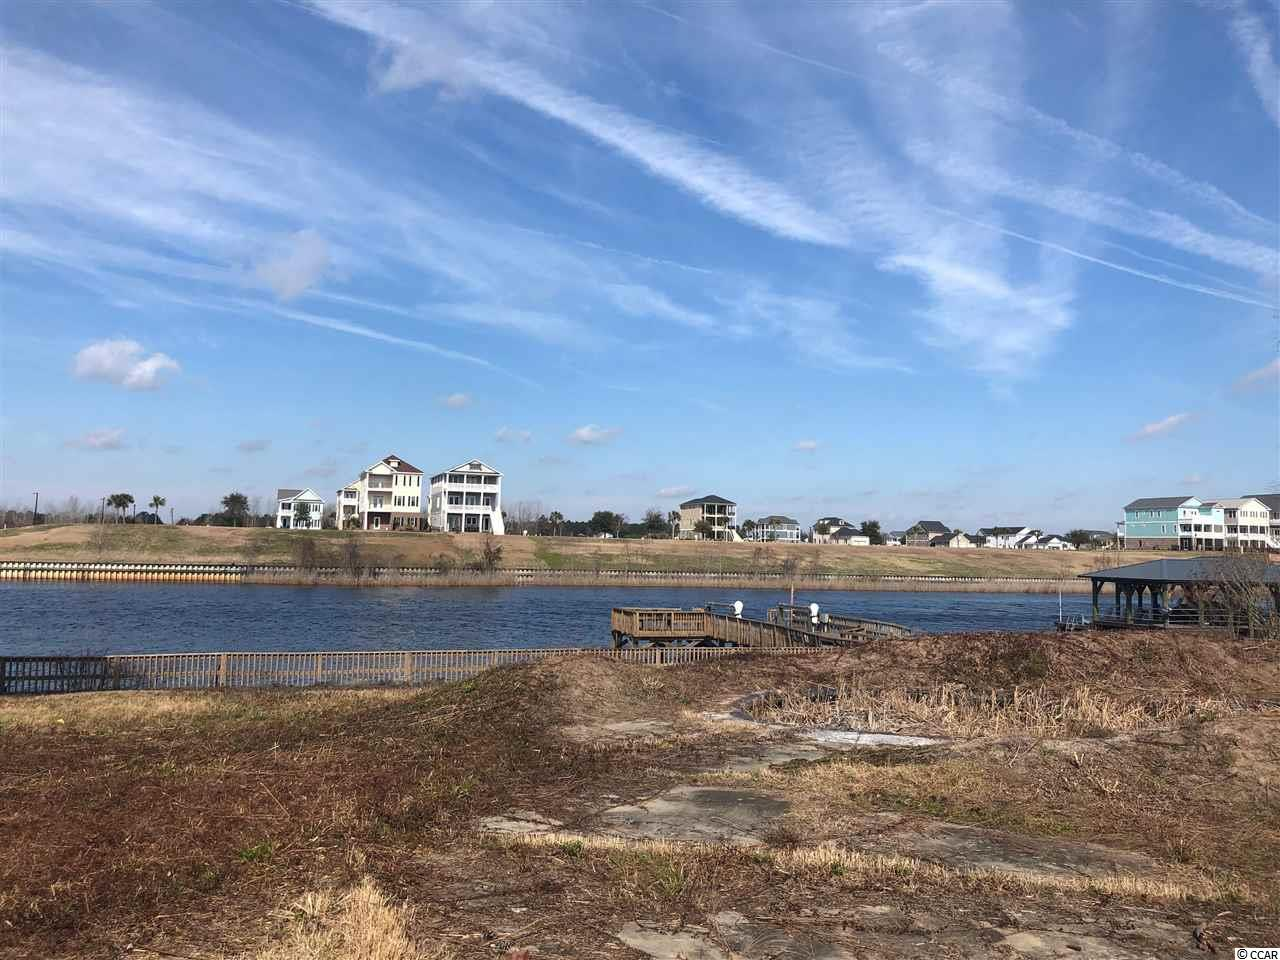 Direct Intra Coastal Waterway lot 130x189x131x185 in the mature well established neighborhood of Plantation Point. Approx. 1 mile to the Atlantic Ocean. Water tap is already to the lot, dock and sea wall are in.  Voluntary HOA.